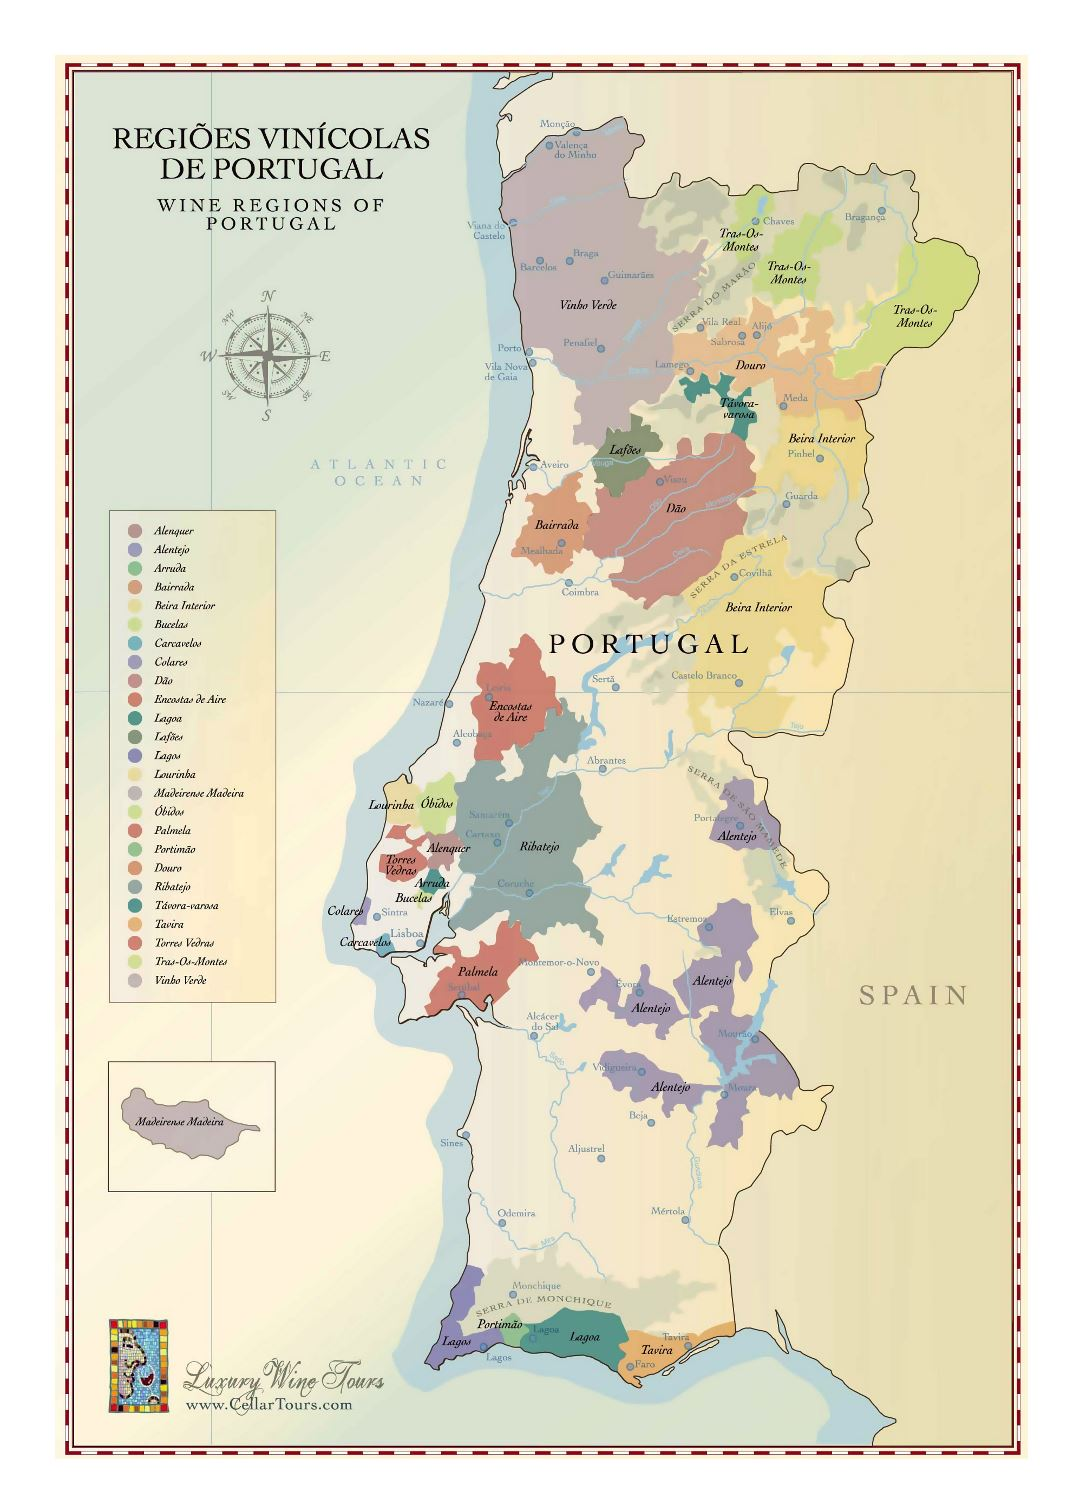 Large wine regions map of Portugal